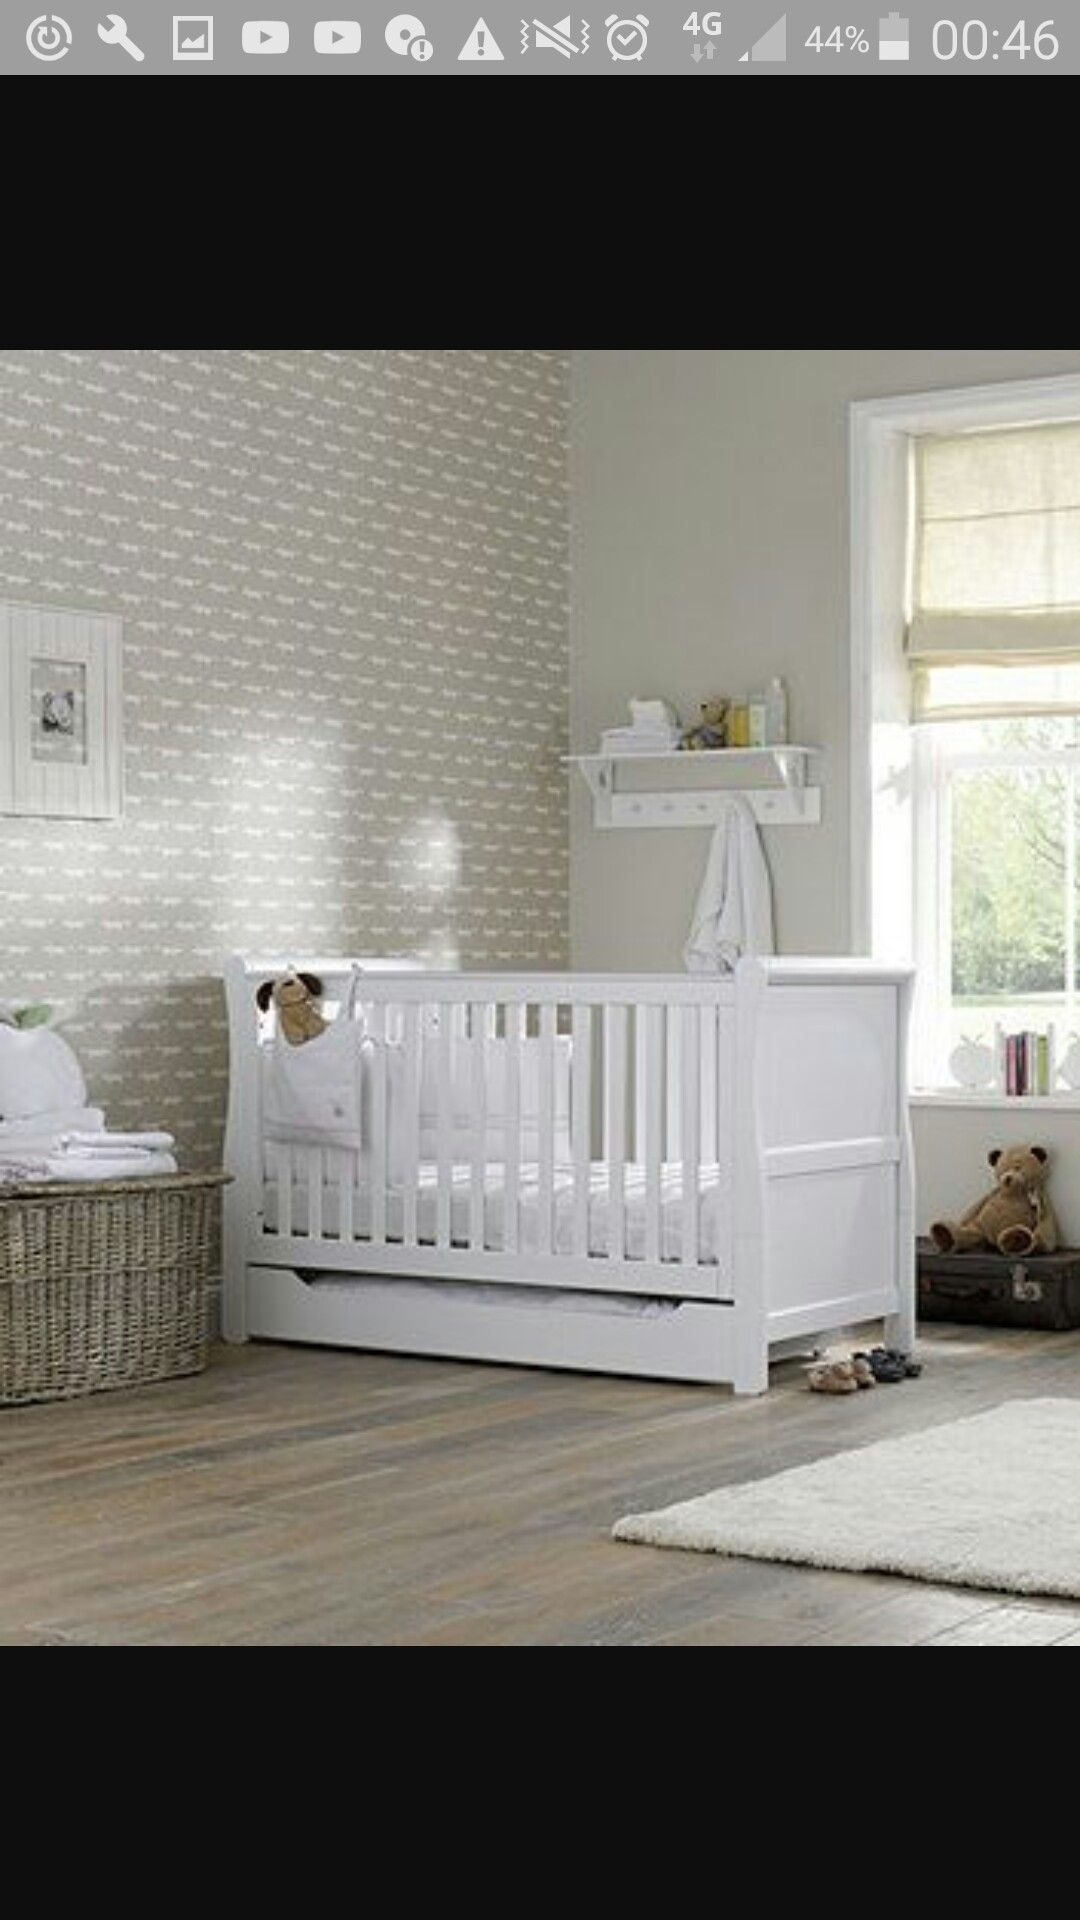 Baby Cot Bedding, White Cot